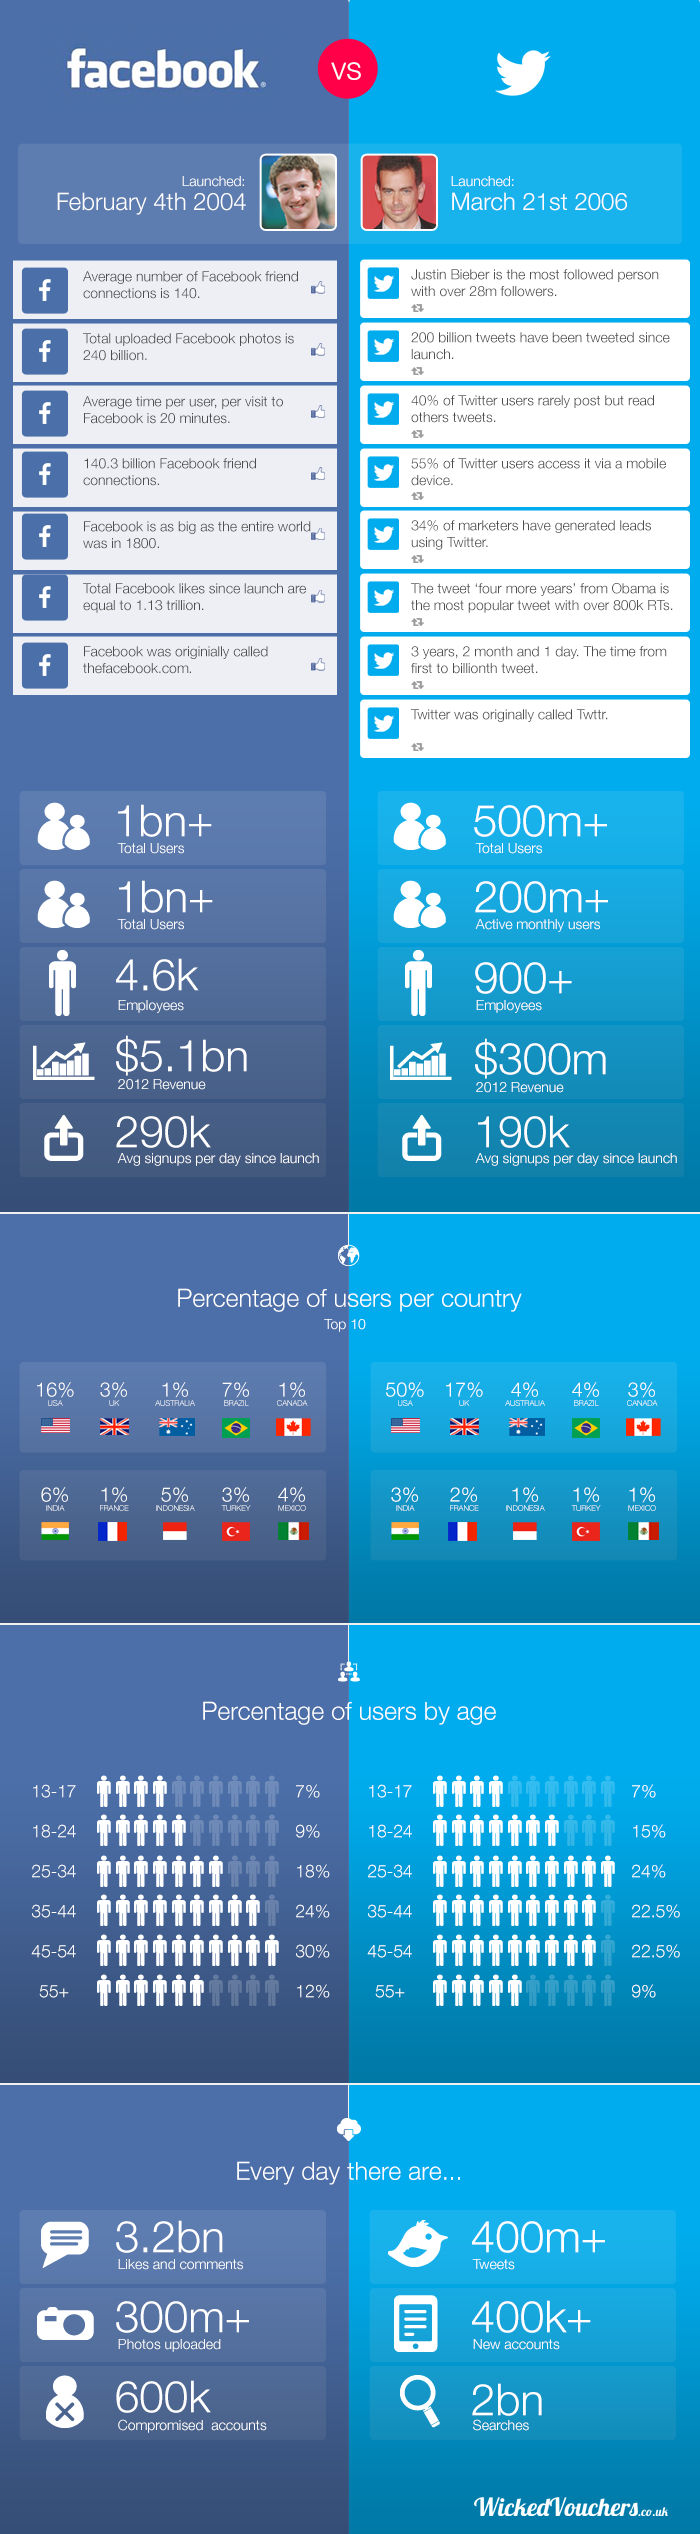 Facebook vs Twitter - THE FACTS | Visual.ly